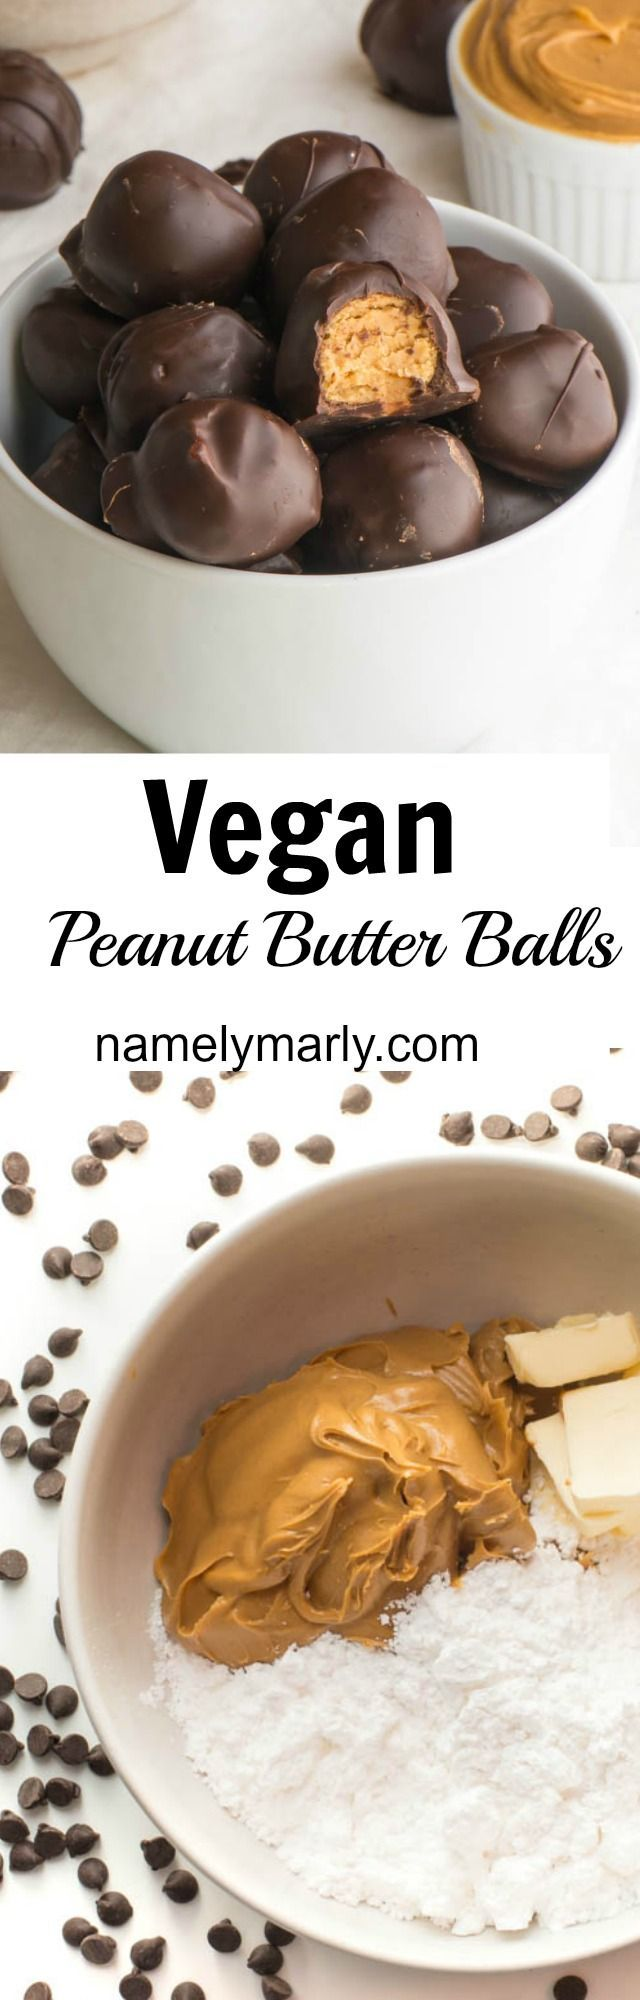 Who said vegan isn't fun? Say good-bye to cholesterol laden peanut butter balls, and say hello to these vegan peanut butter balls covered in chocolate.